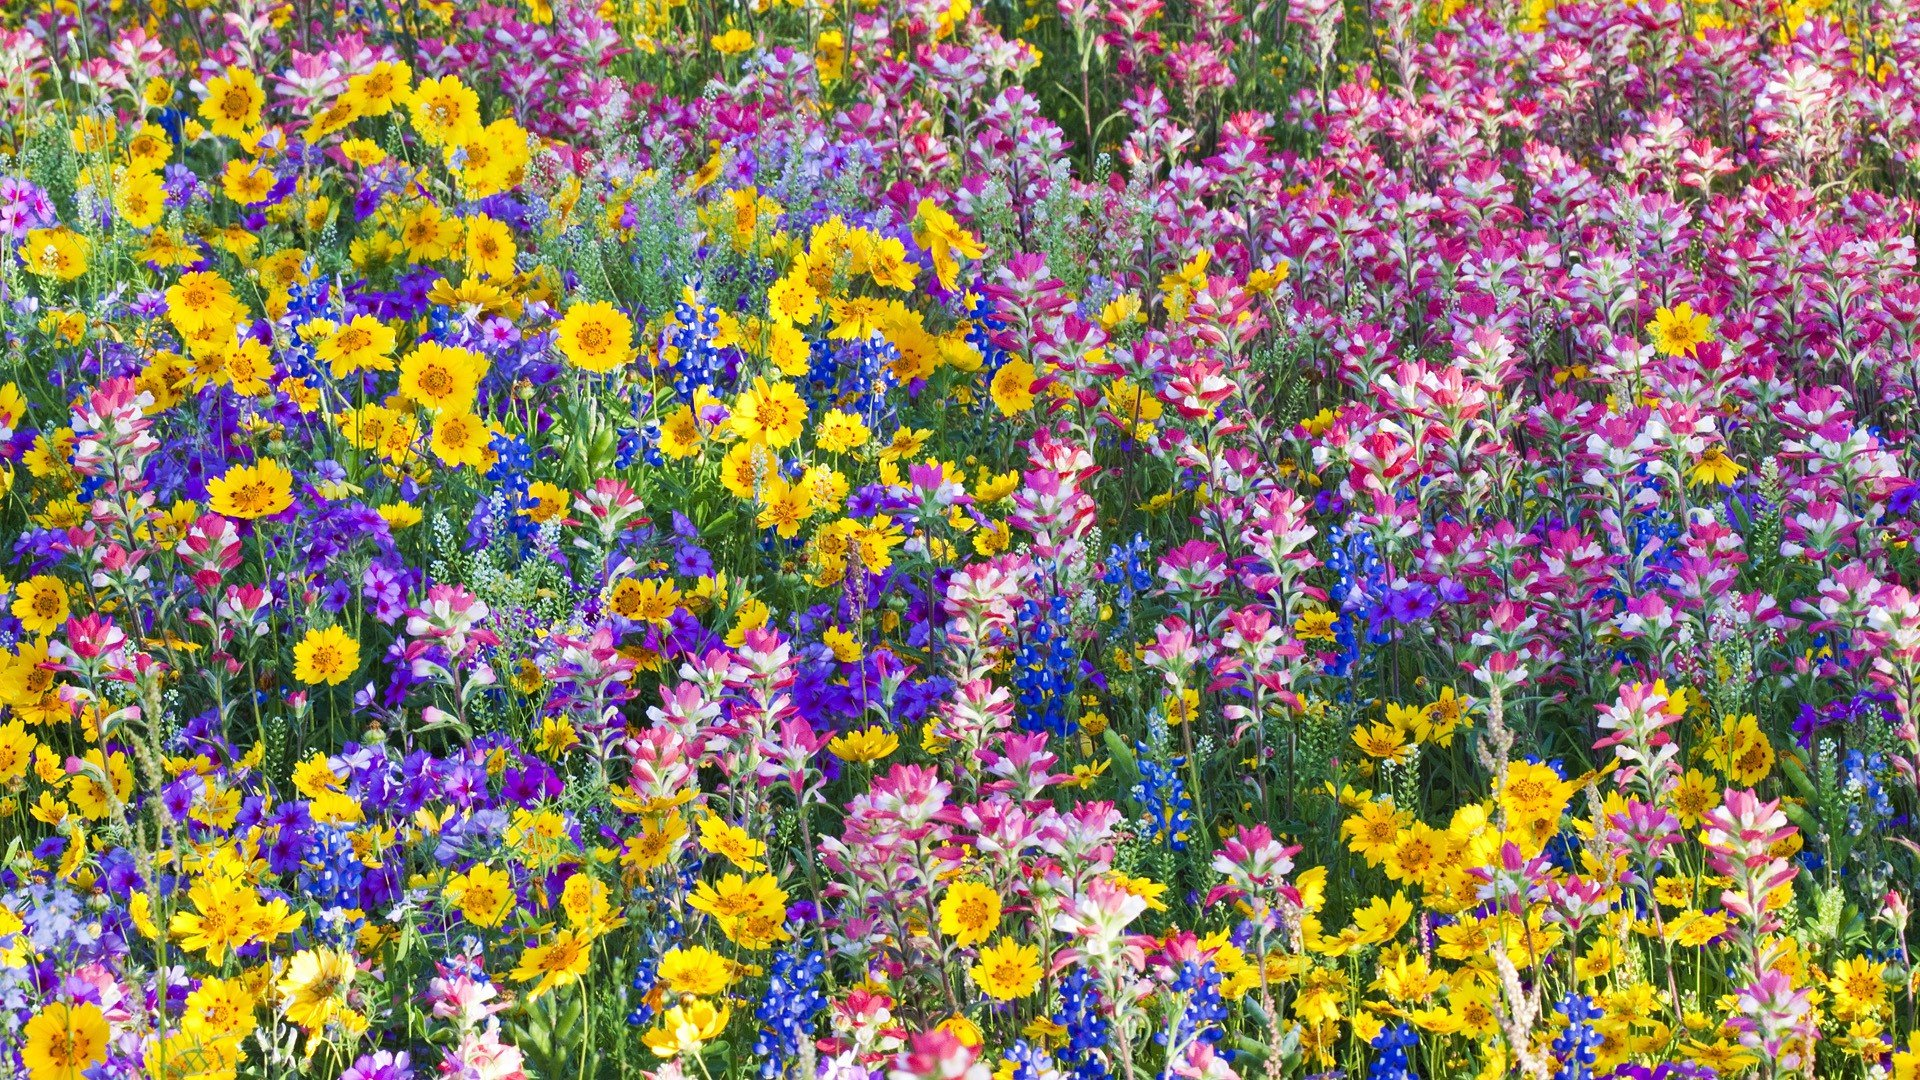 flowers spring Texas wildflowers Bluebells wallpaper background 1920x1080